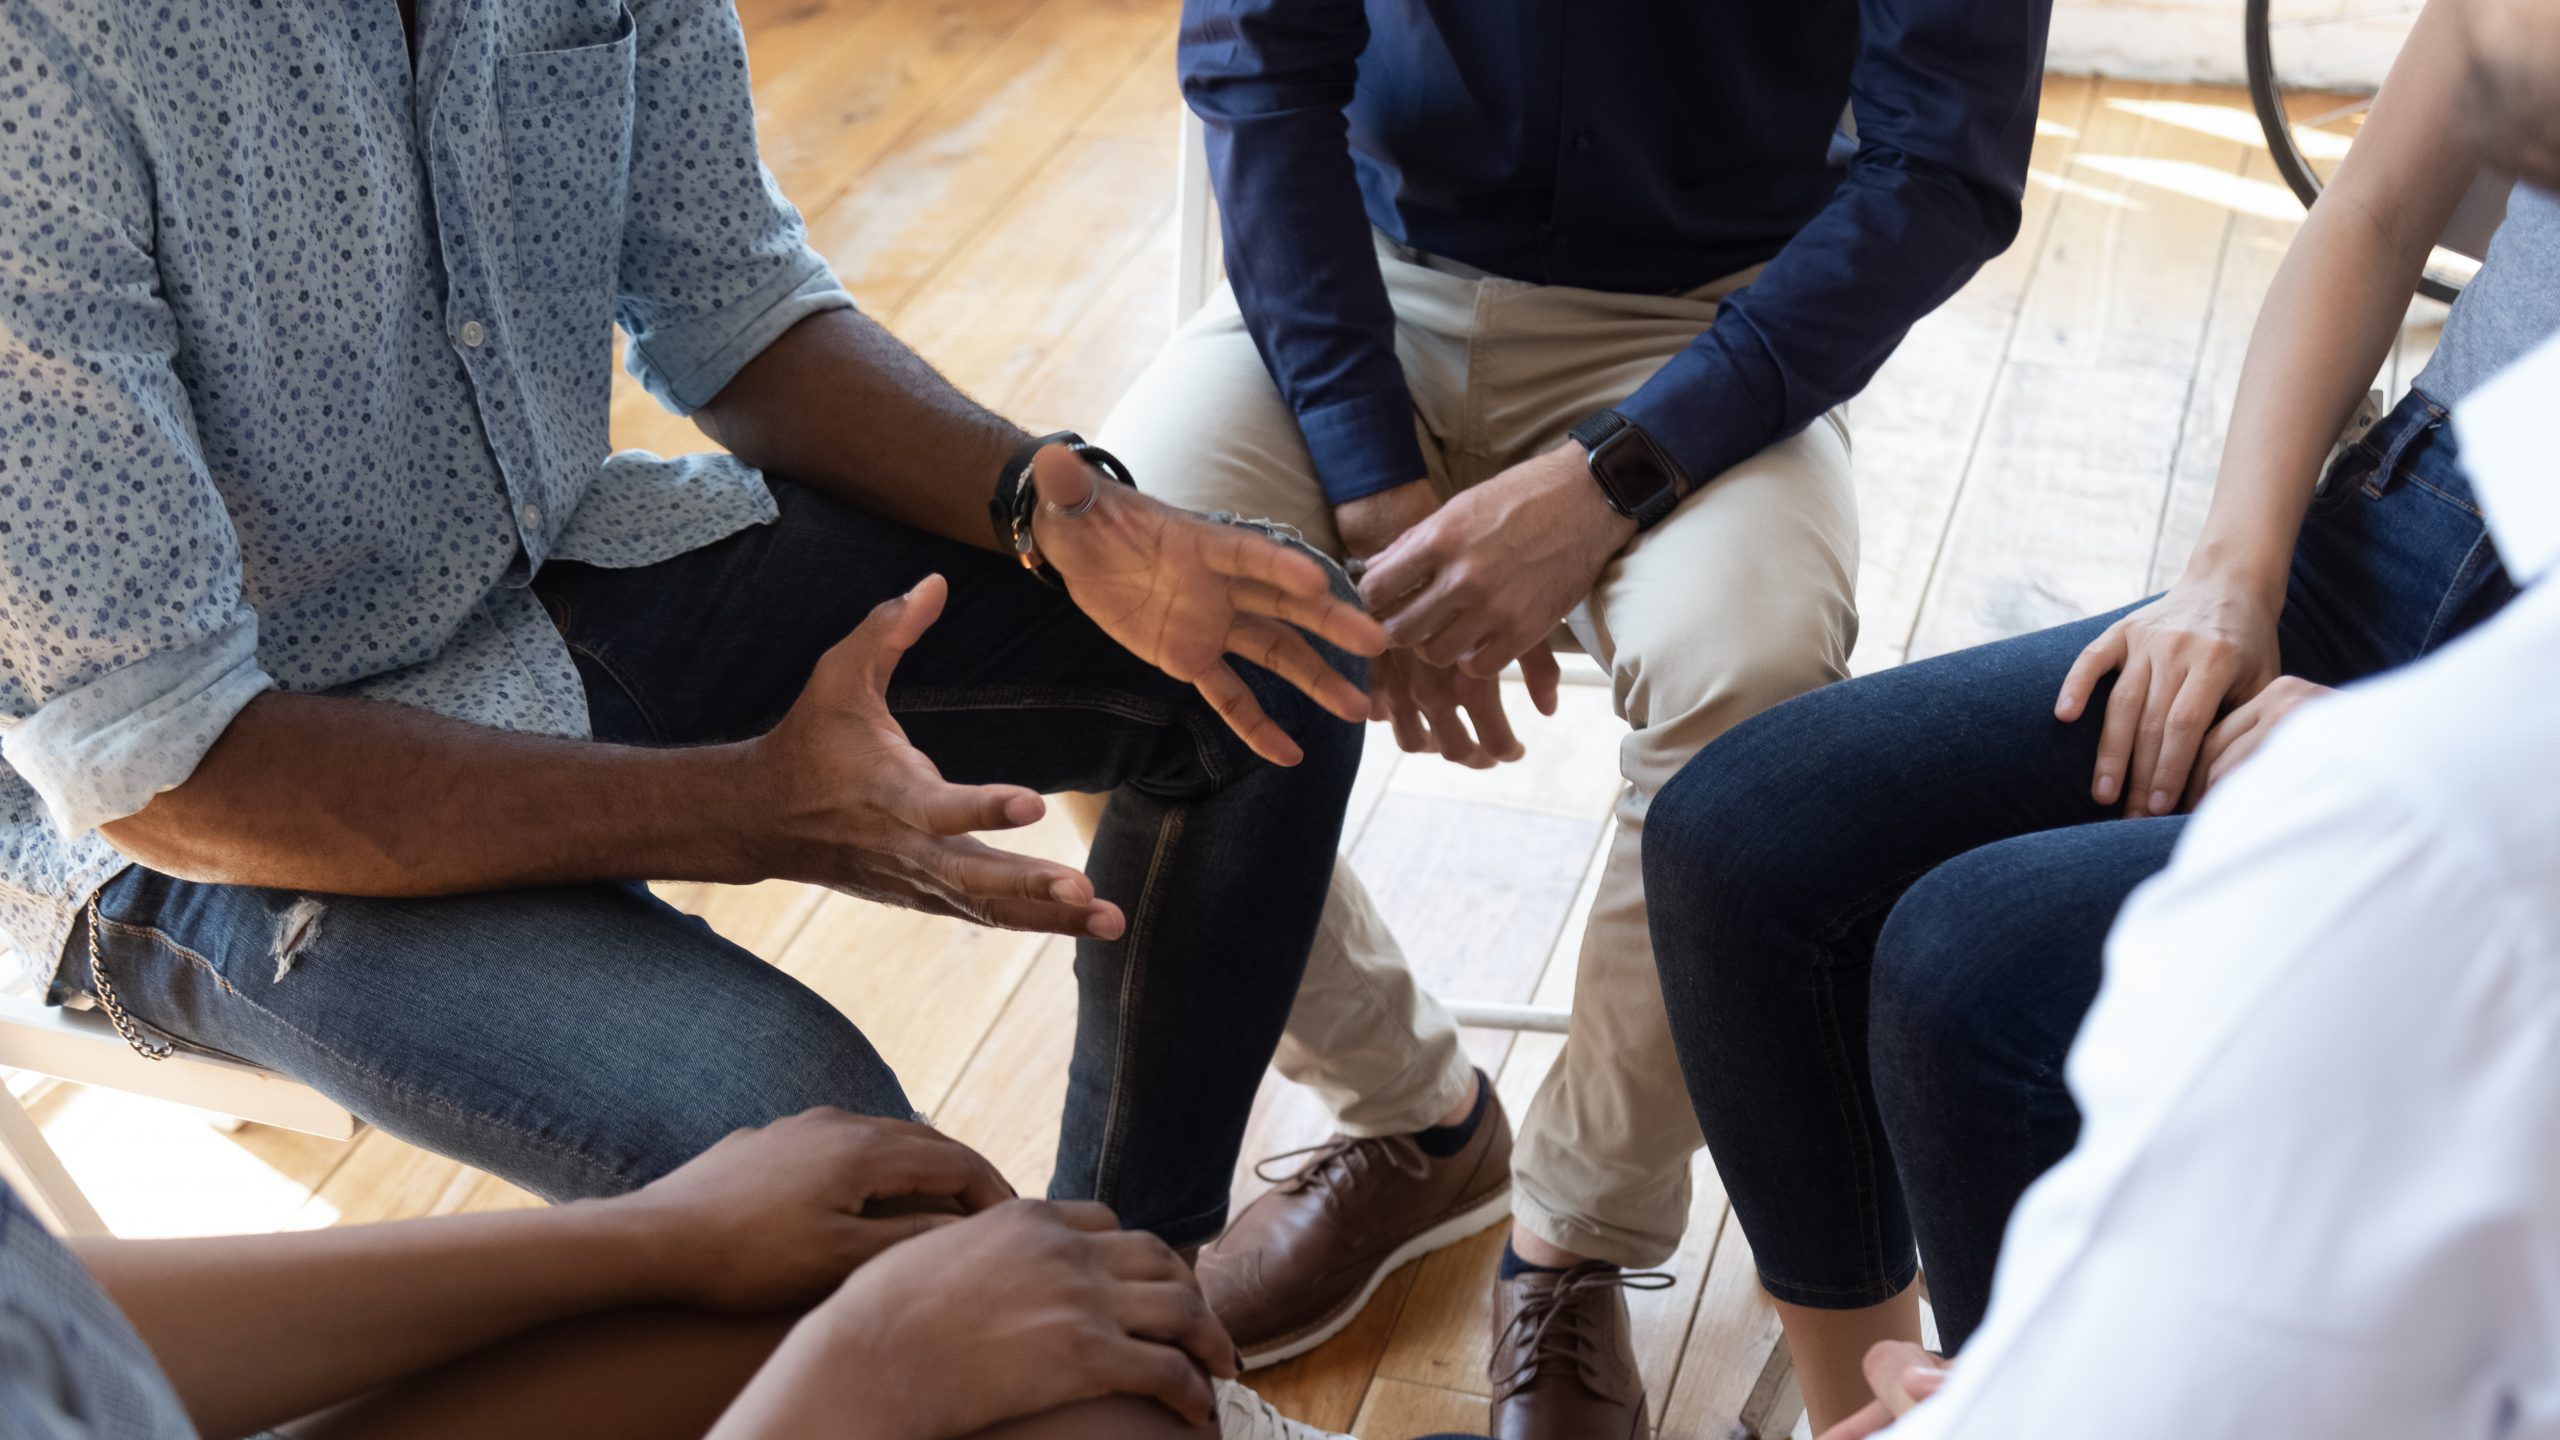 African,Man,Counselor,Therapist,Coach,Psychologist,Speak,At,Group,Counseling